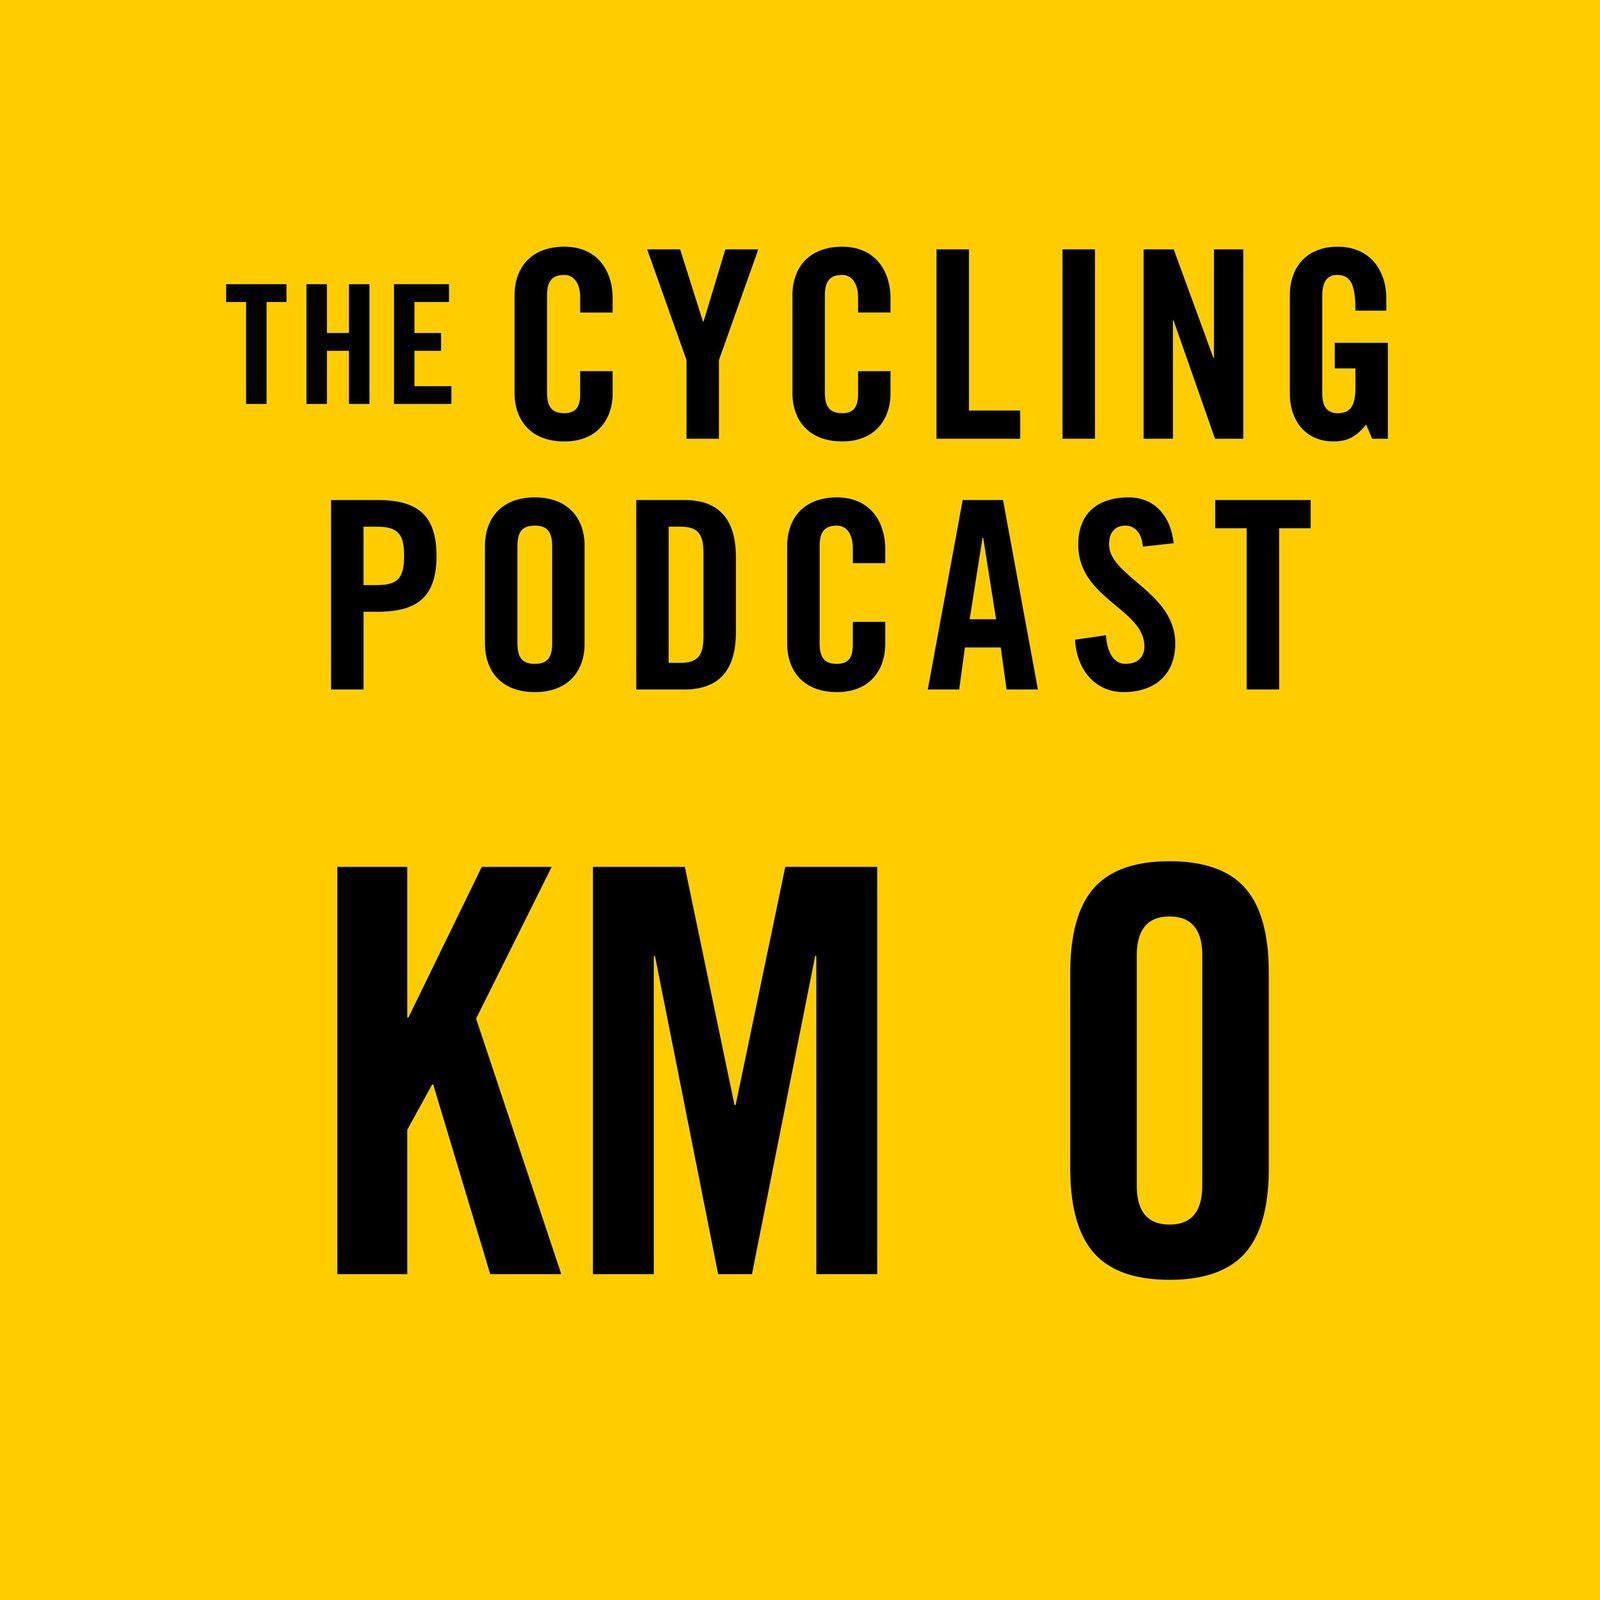 Kilometre 0 by The Cycling Podcast podcast tile